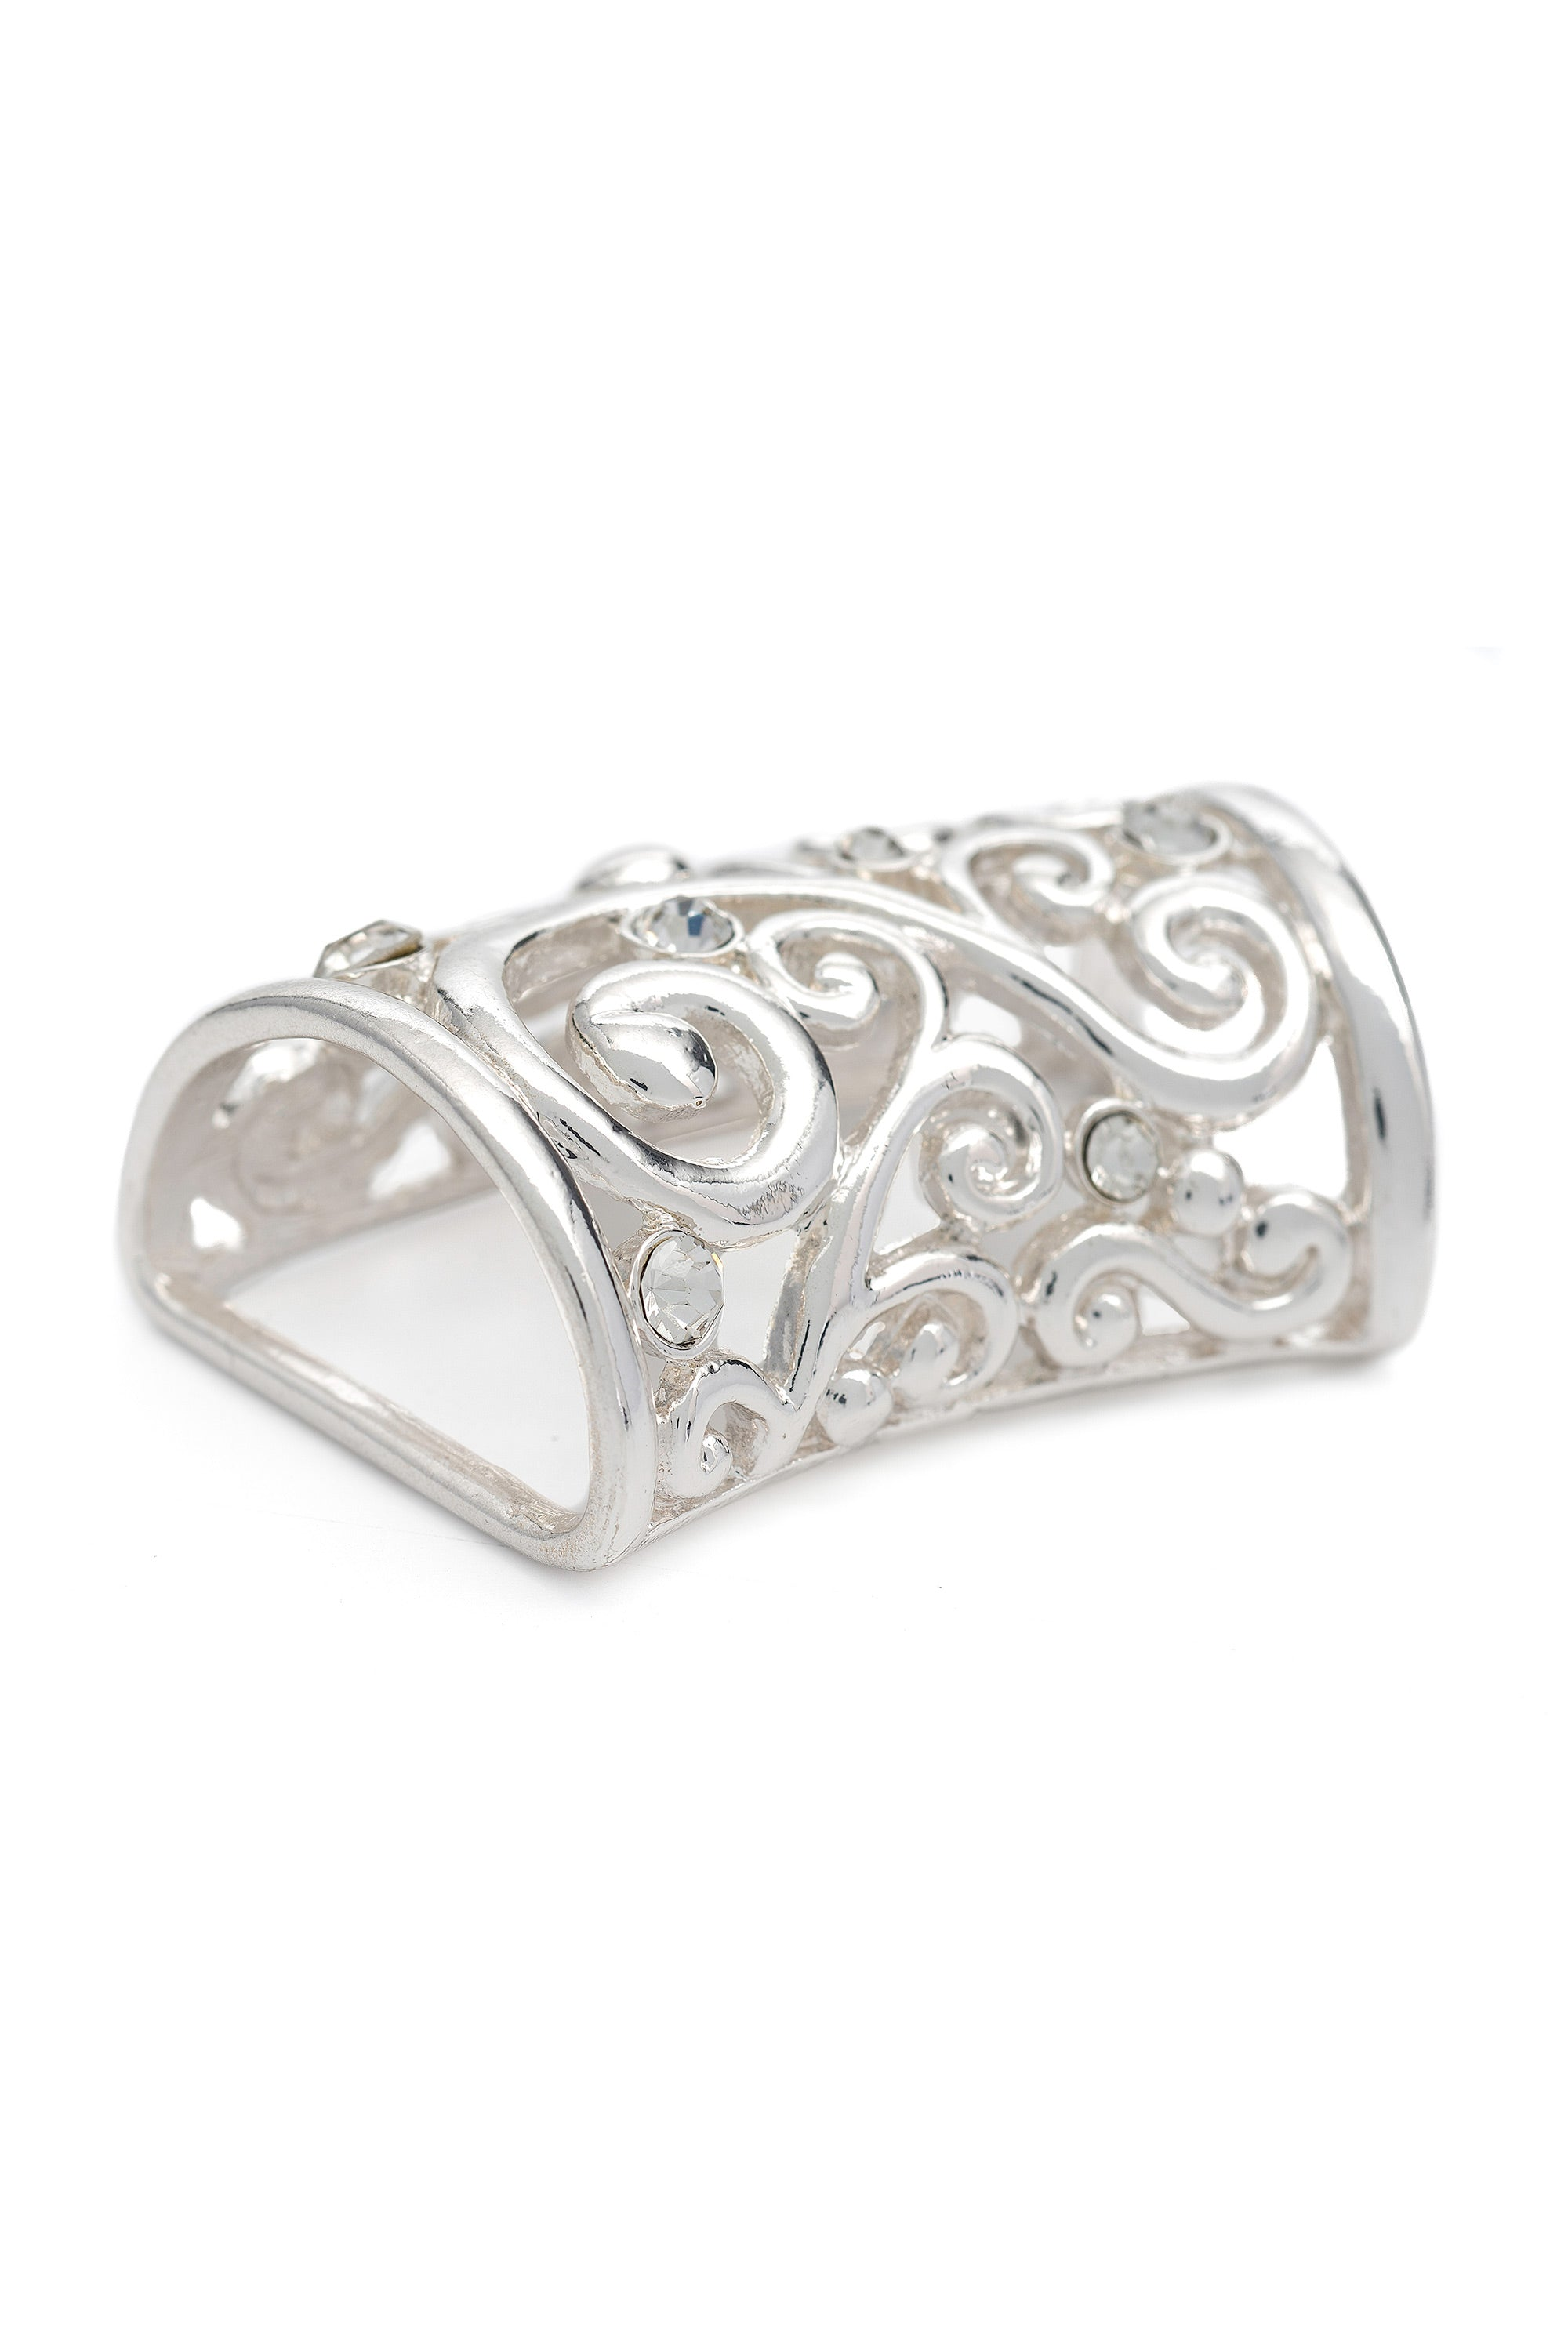 Type 2 Filigree Scarf Ring